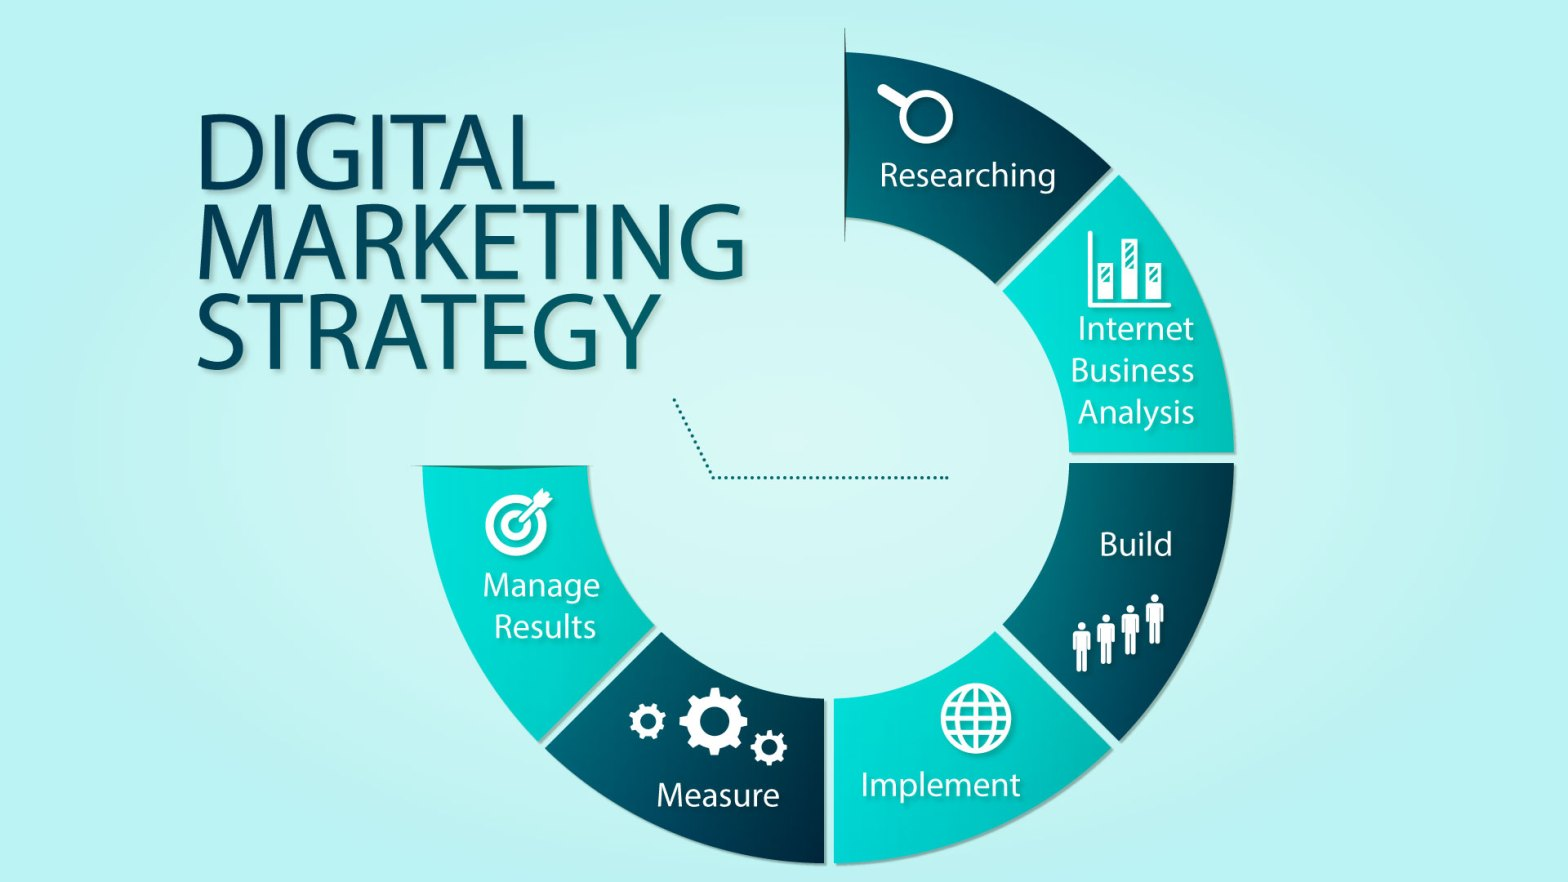 Steps To Successful Digital Marketing For Your Business